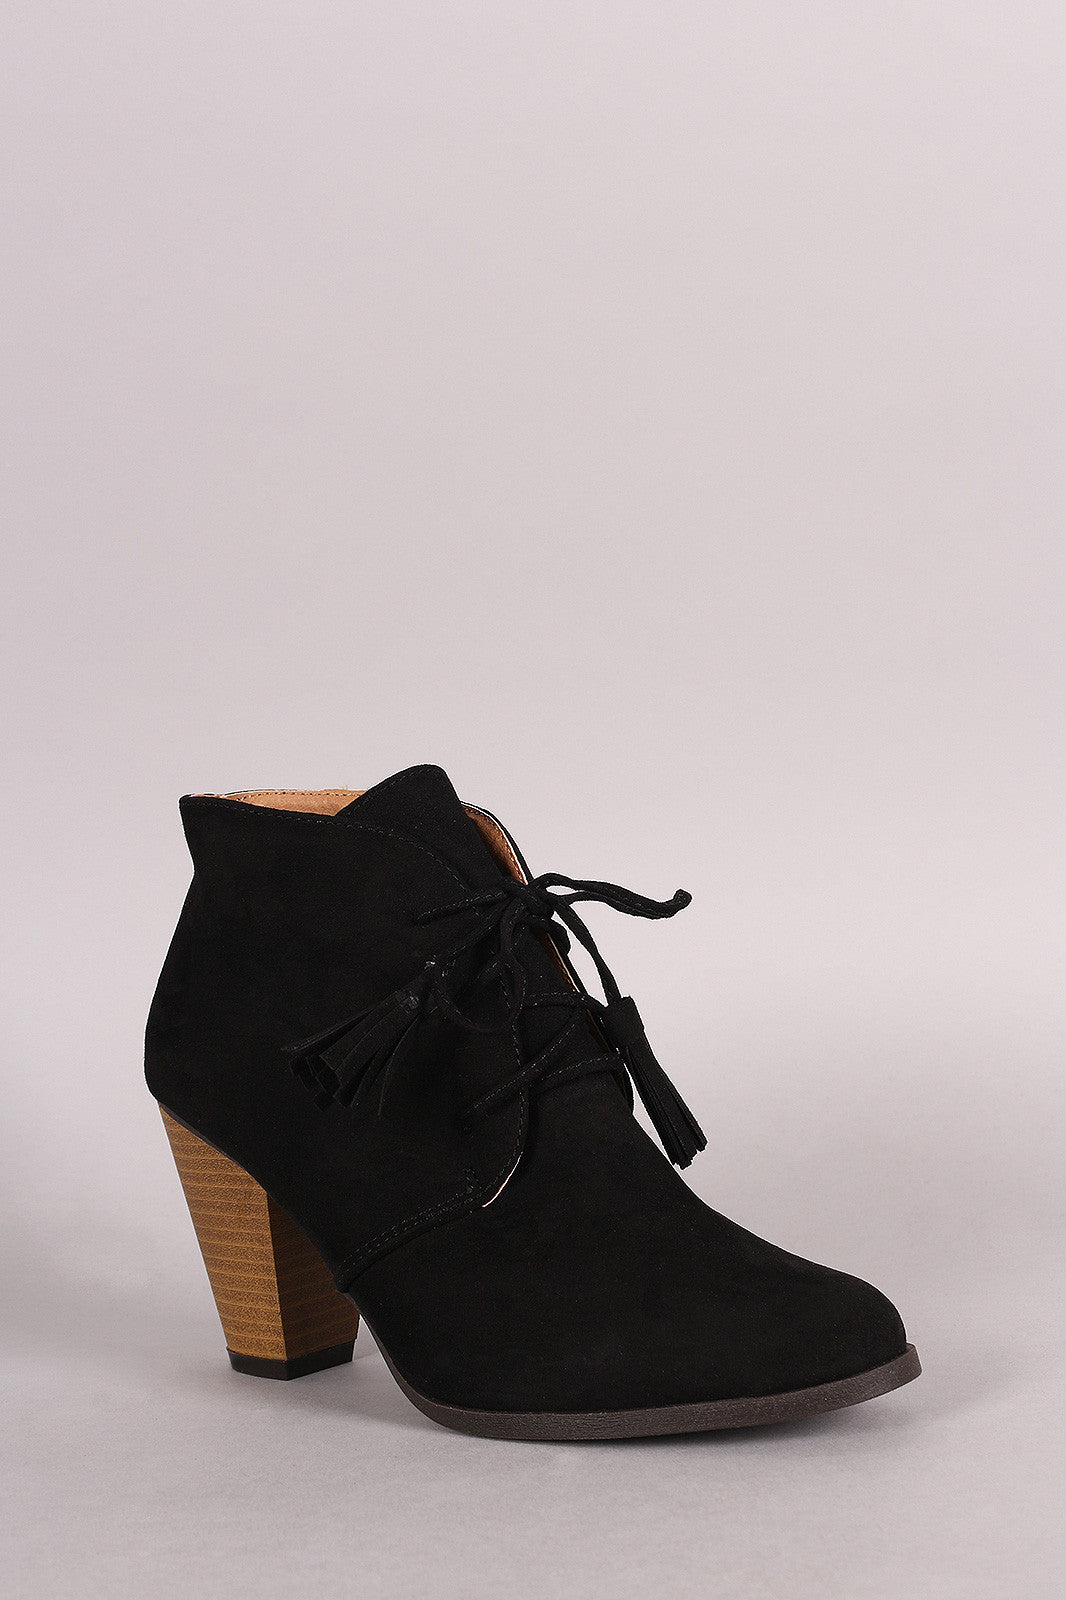 Qupid Suede Western Cowgirl Lace Up Ankle Boots - Thick 'N' Curvy Shop - 2